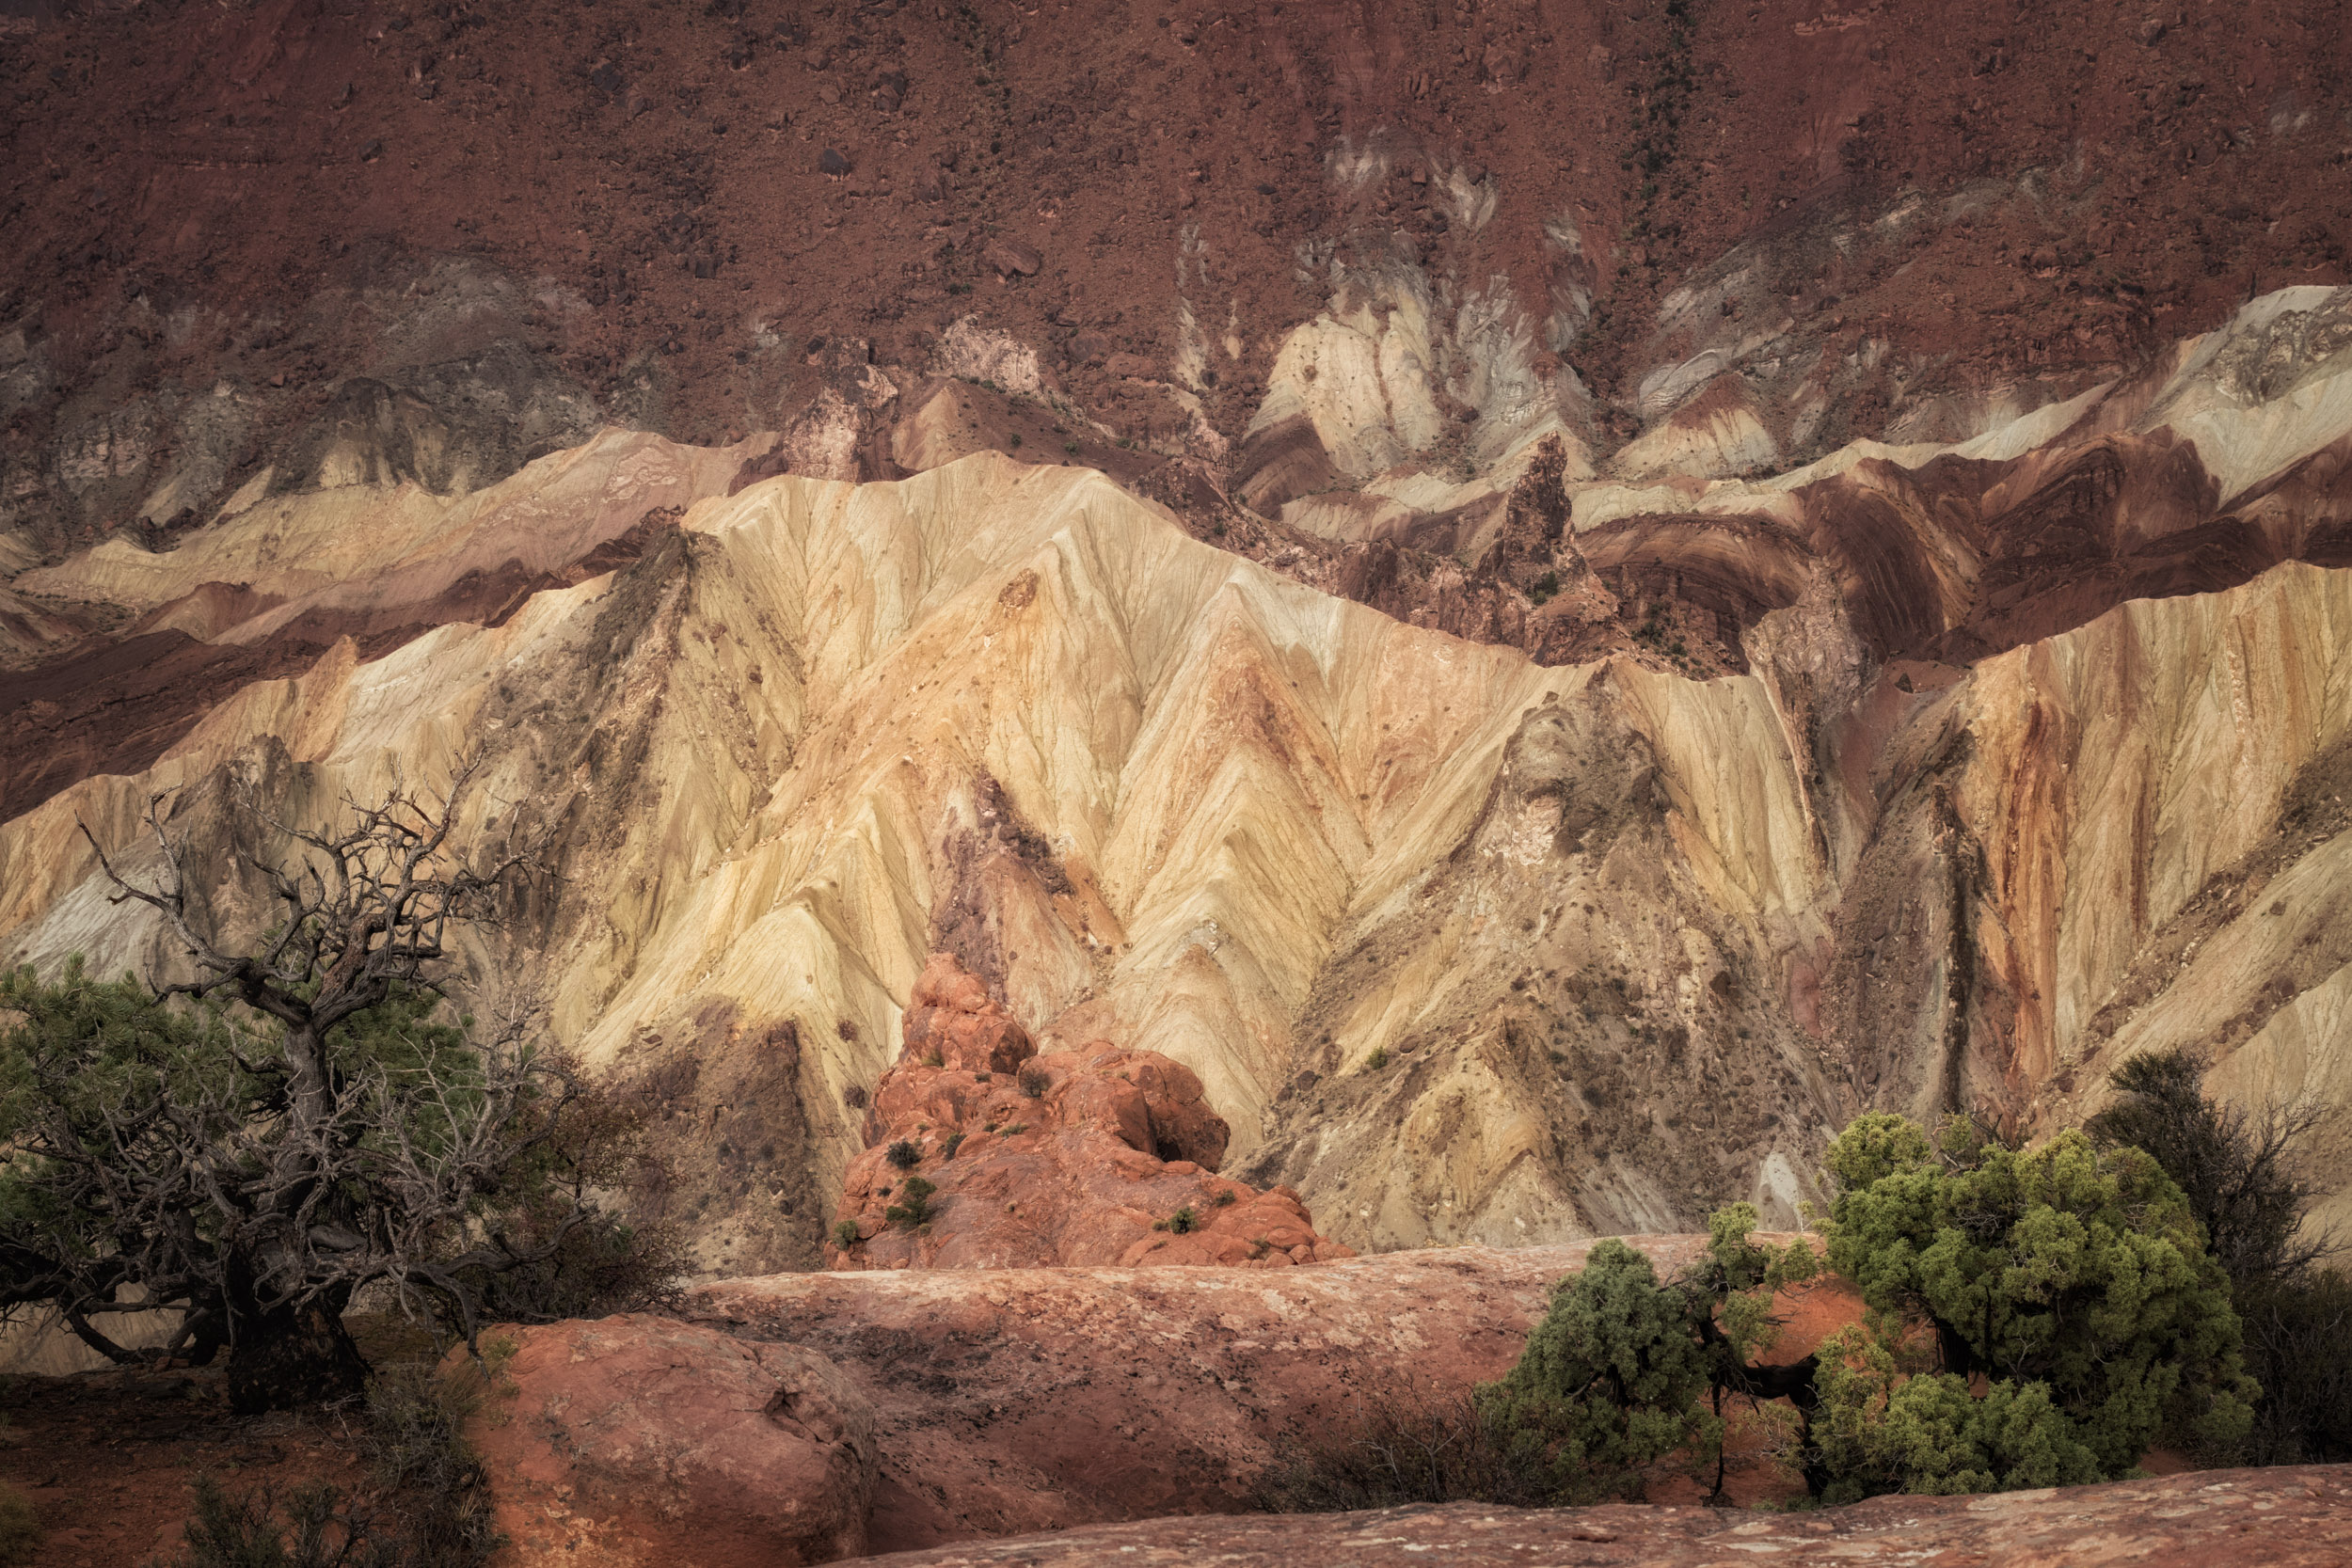 Upheaval Dome detail